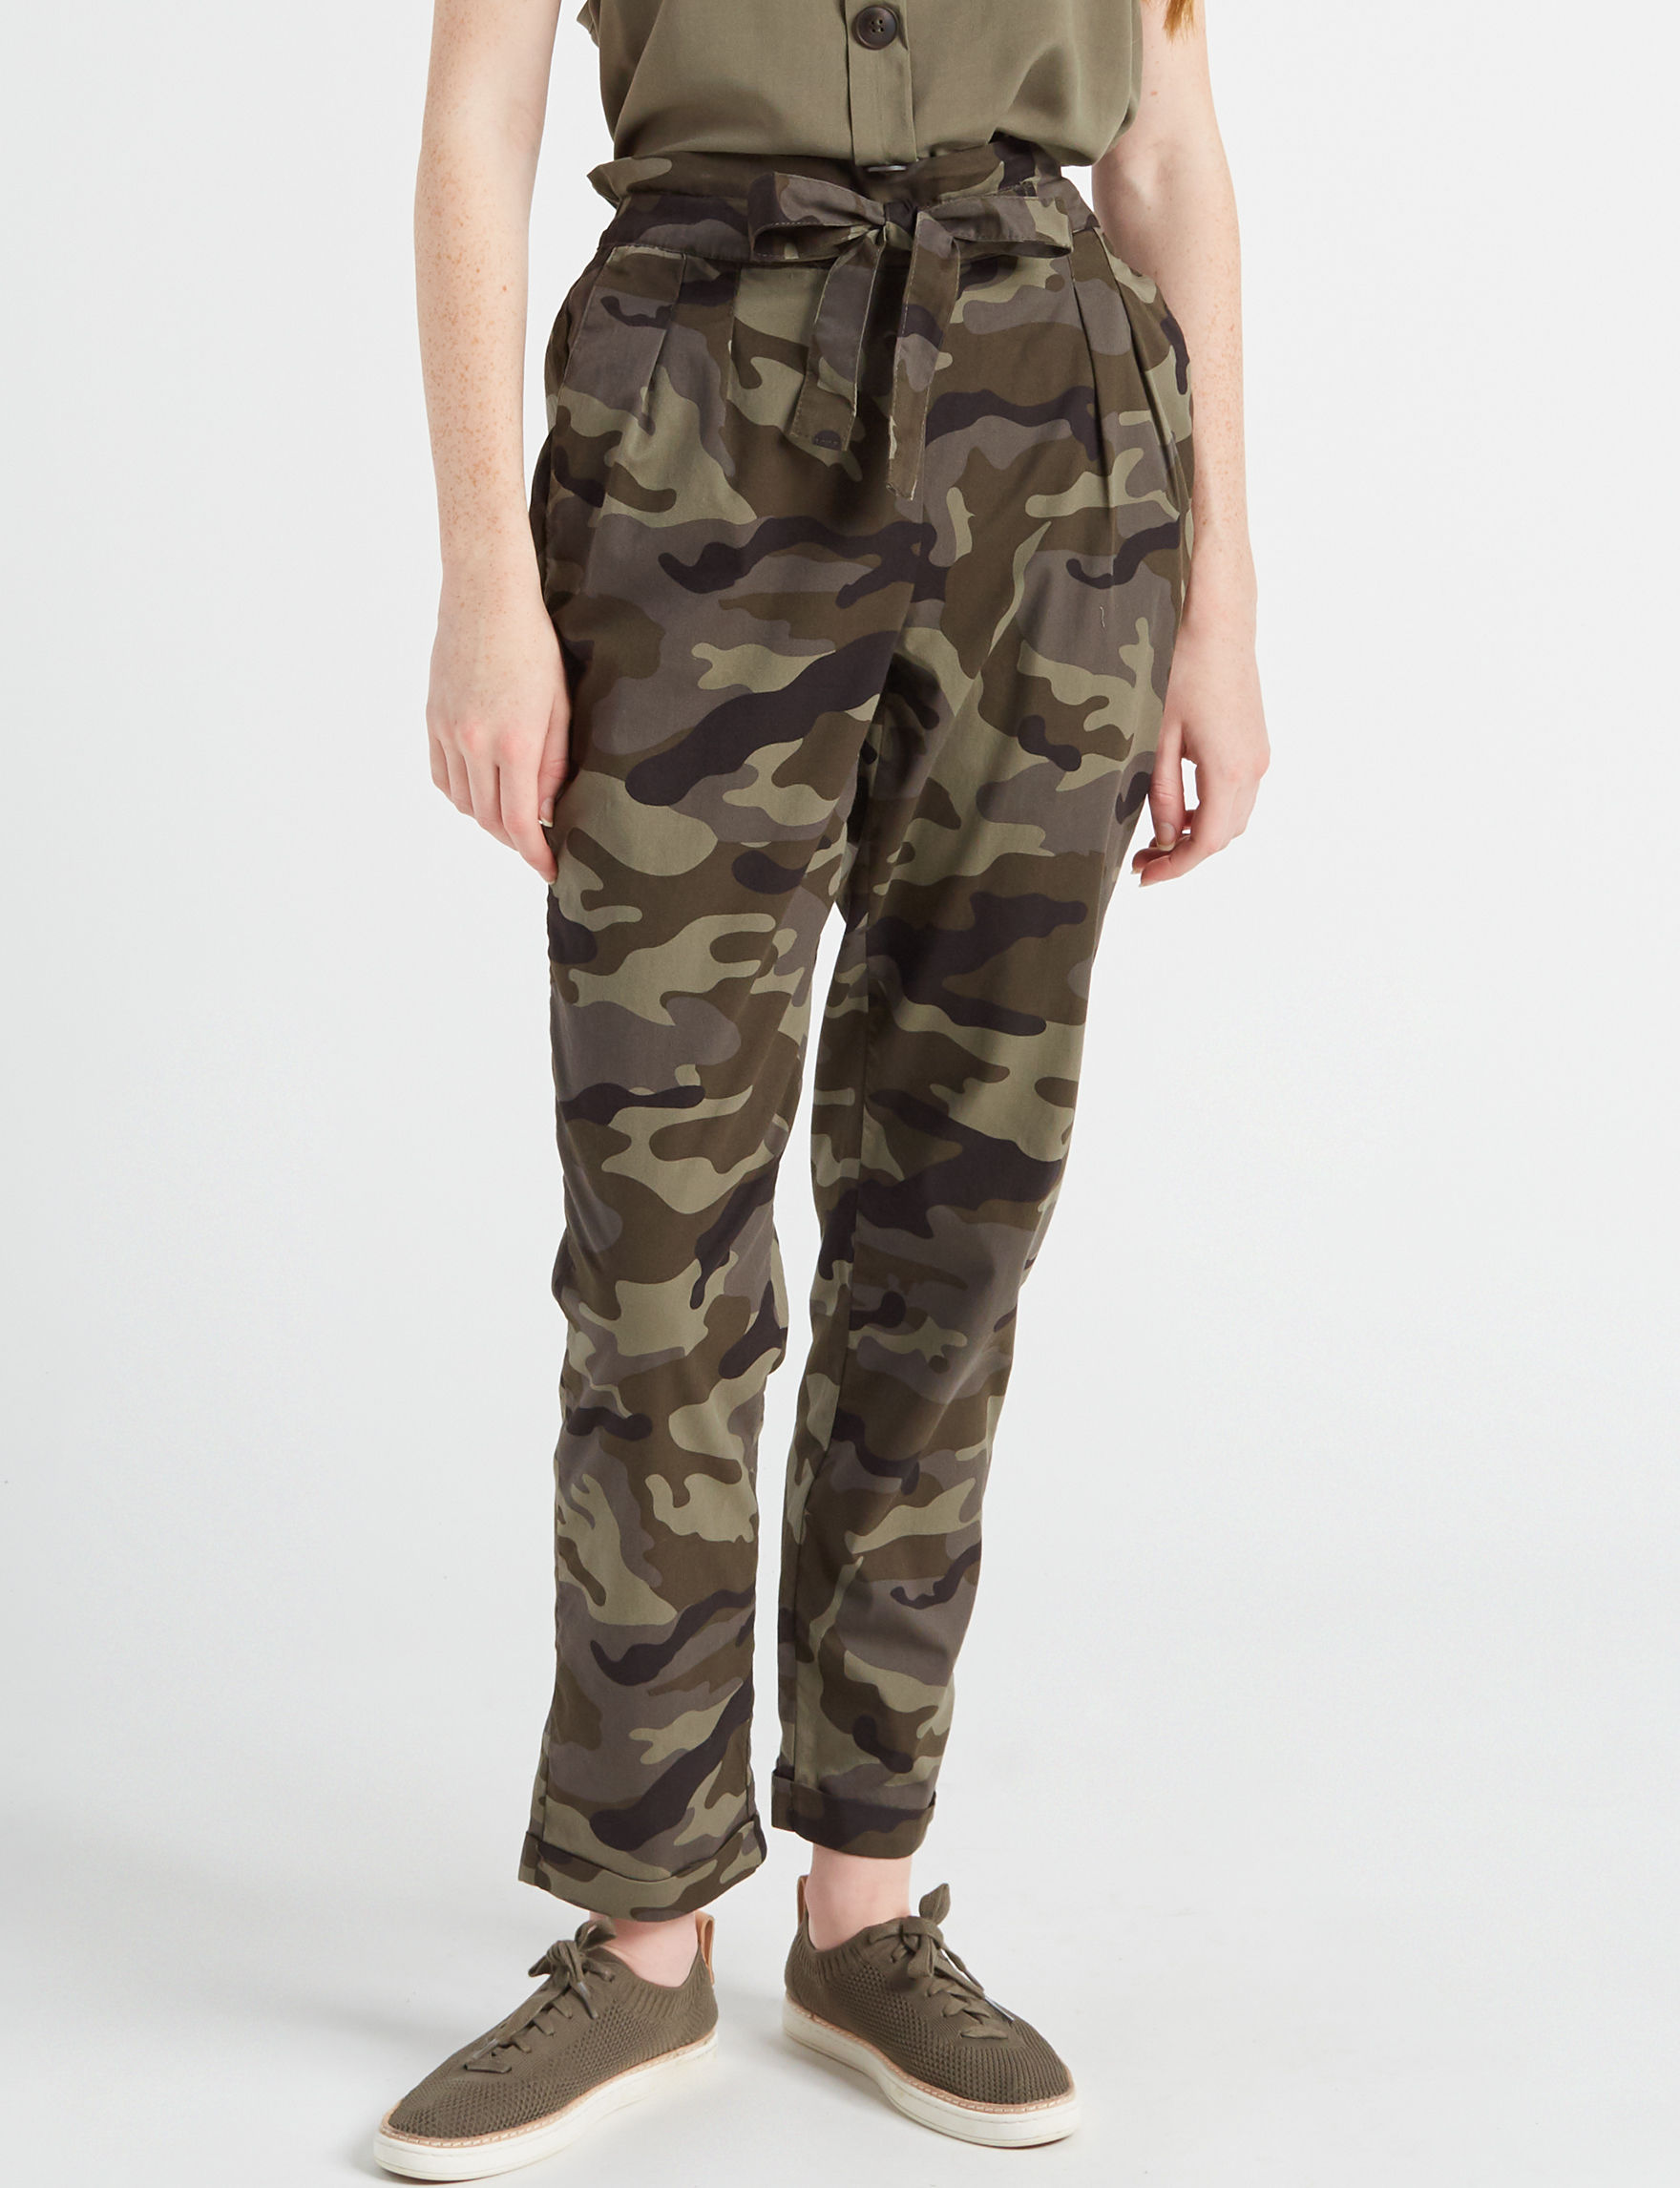 277b9079940 Almost Famous Juniors' Camo Tie Waist Taper Leg Pants | Stage Stores